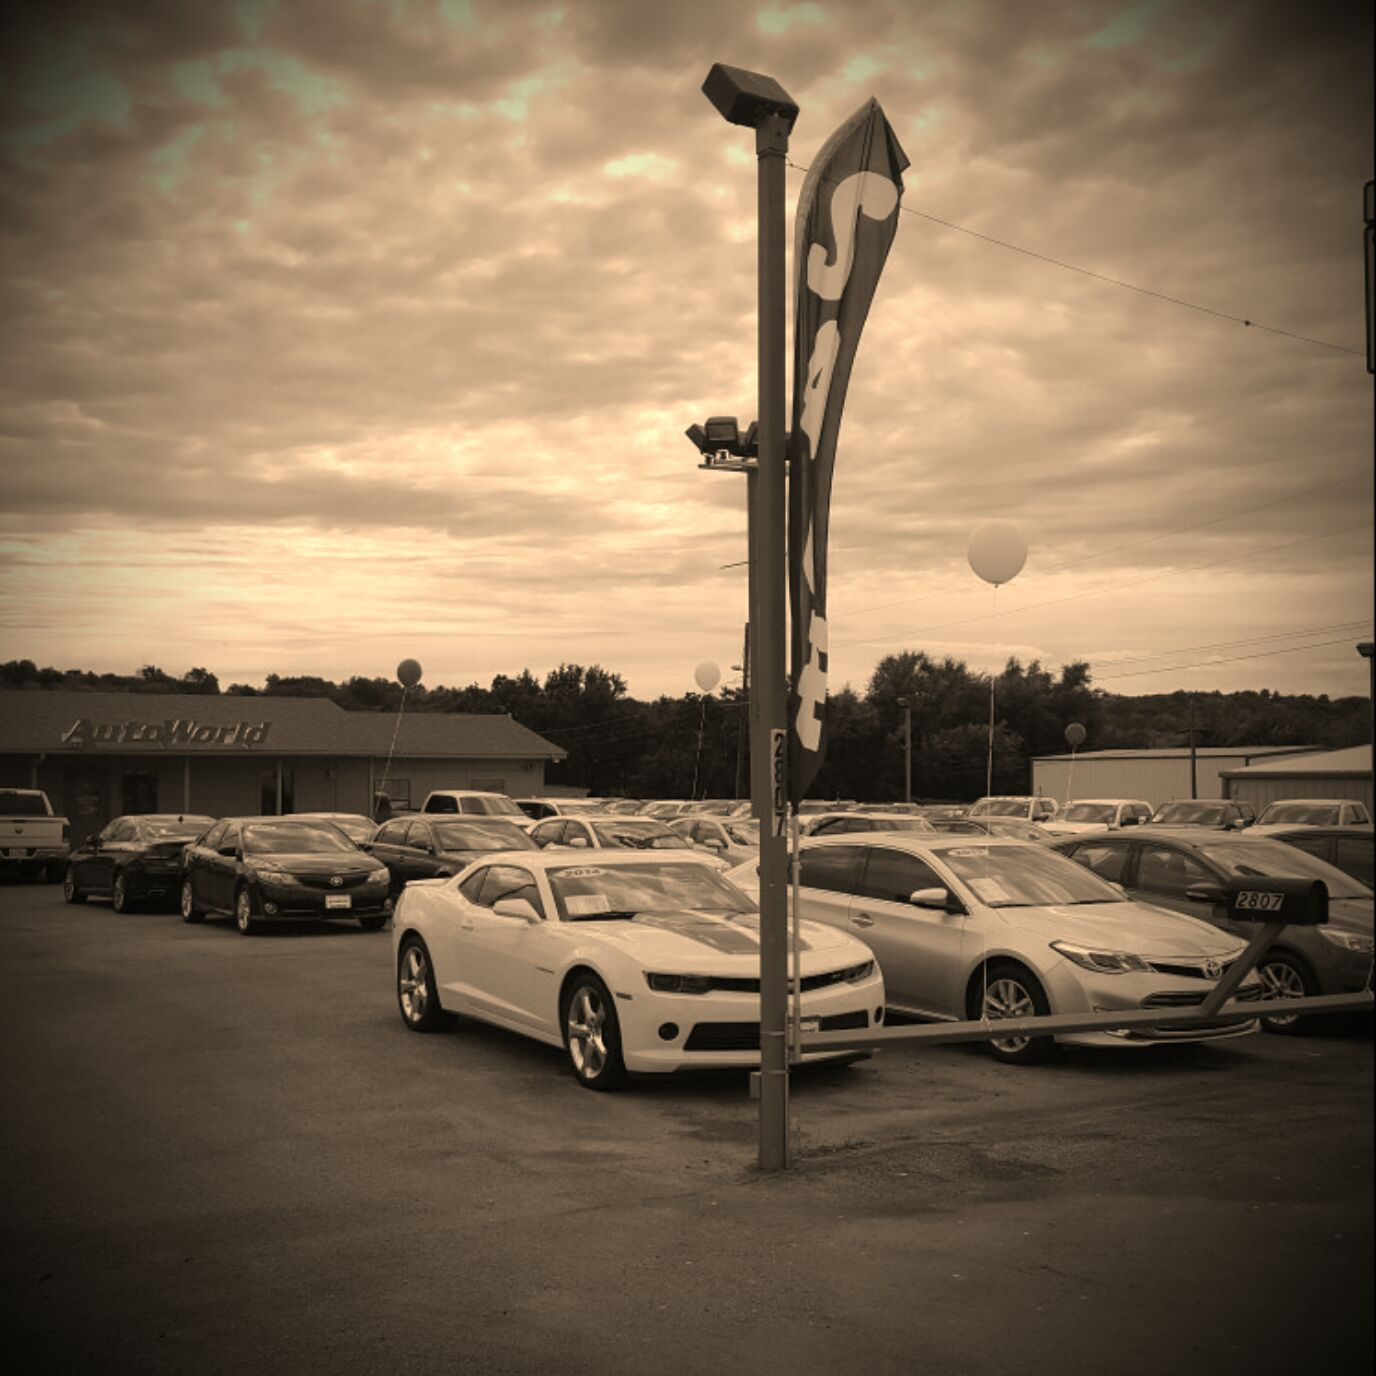 Volkswagen Stockton: Ram Country AutoWorld Of Marble Falls In Marble Falls, TX